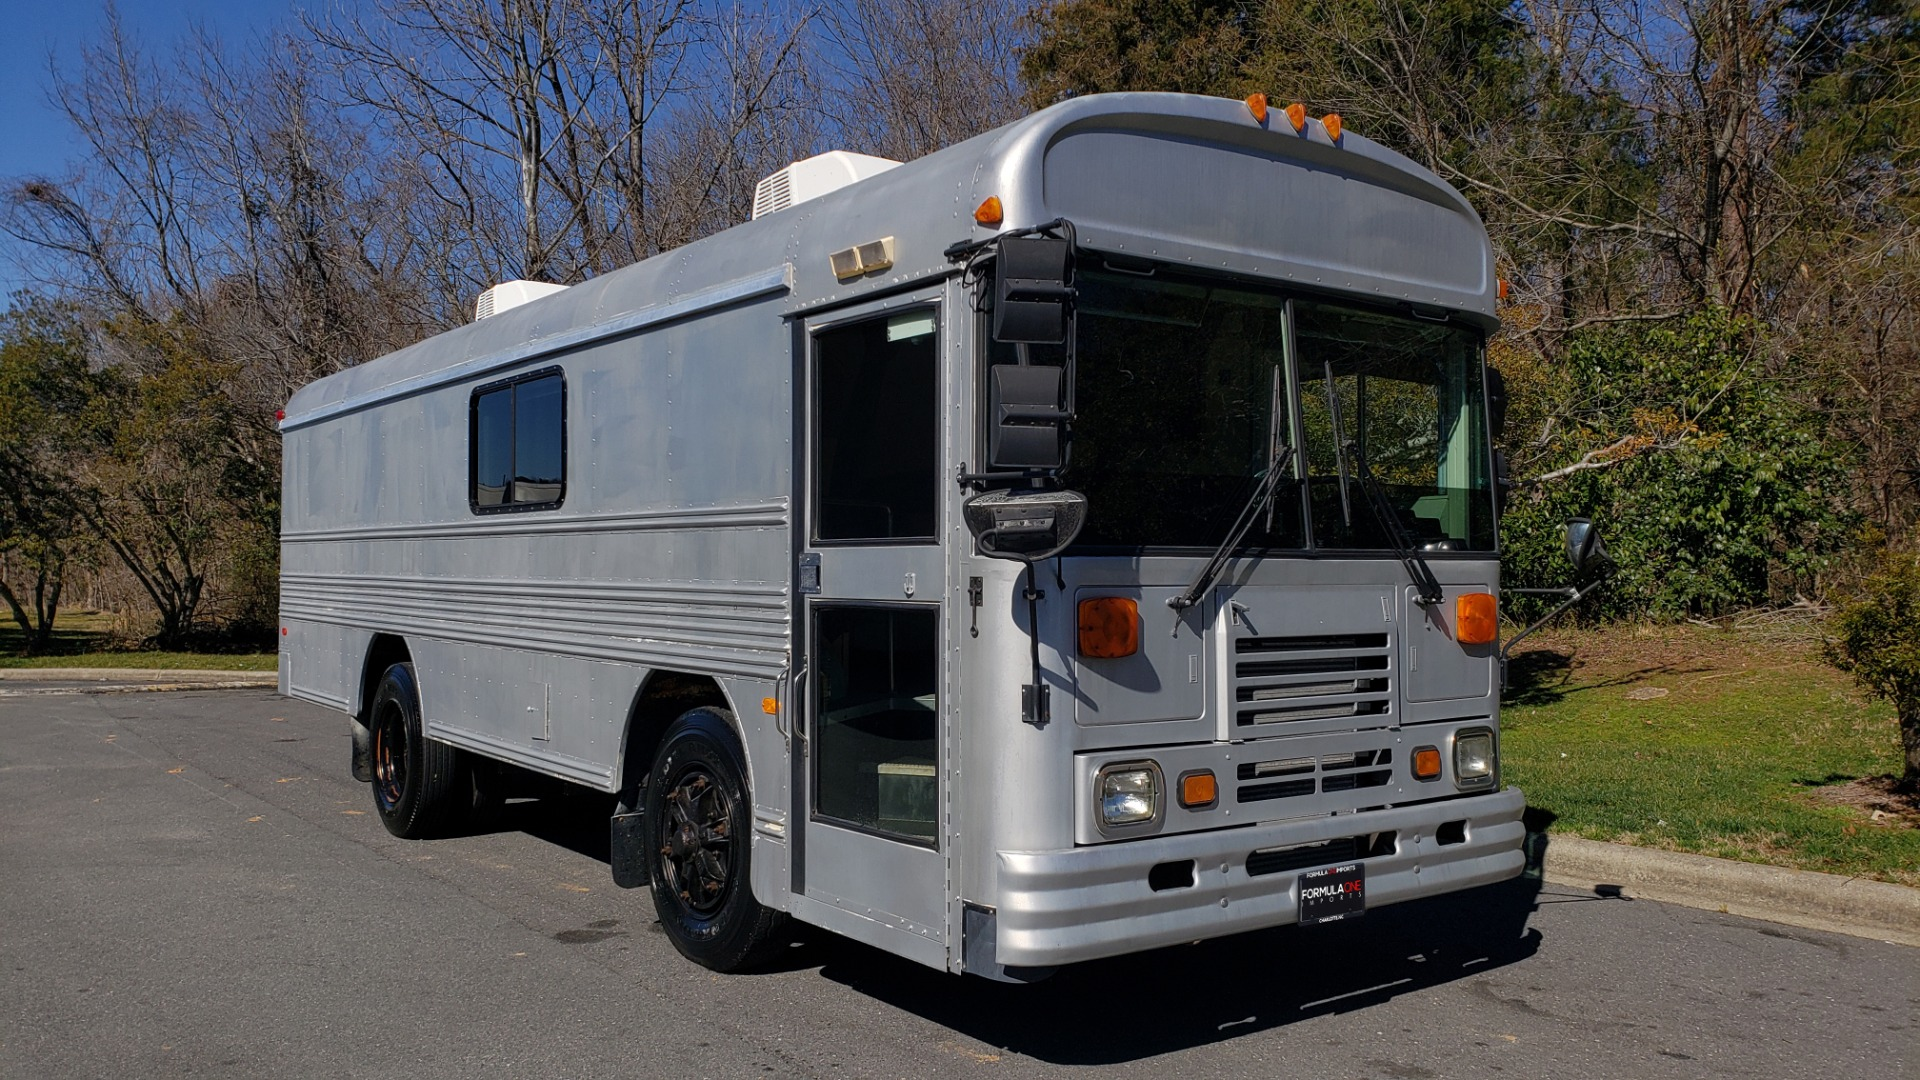 Used 1993 Chevrolet BLUEBIRD SCHOOL BUS 30' / CUMMINS DIESEL / AIR / GENERATOR for sale $35,000 at Formula Imports in Charlotte NC 28227 6